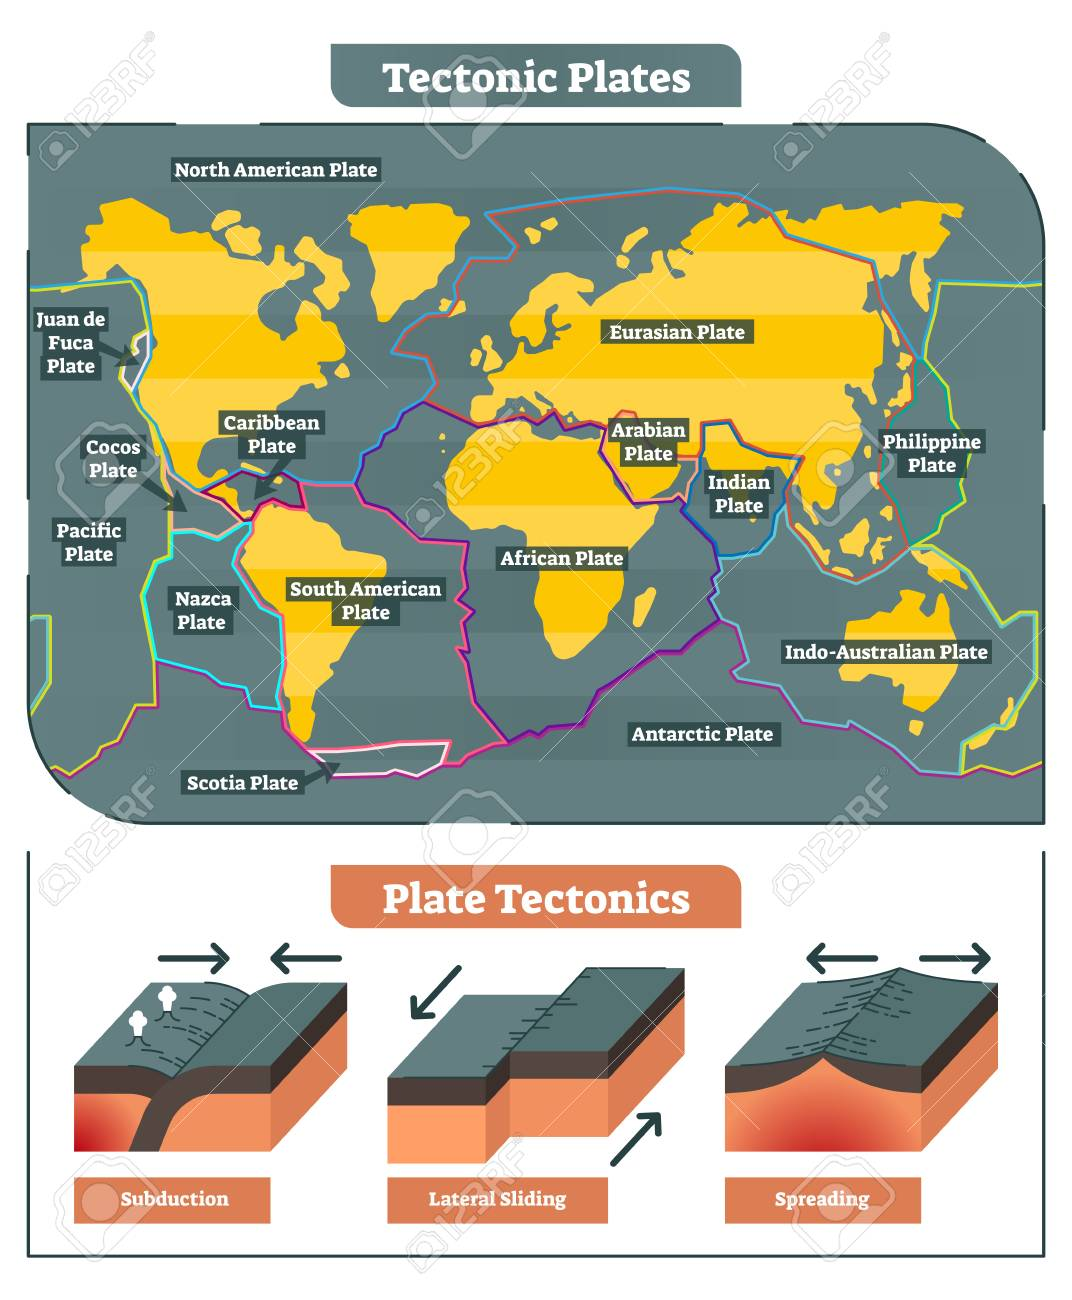 Tectonic Plates Diagram - House Wiring Diagram Symbols •